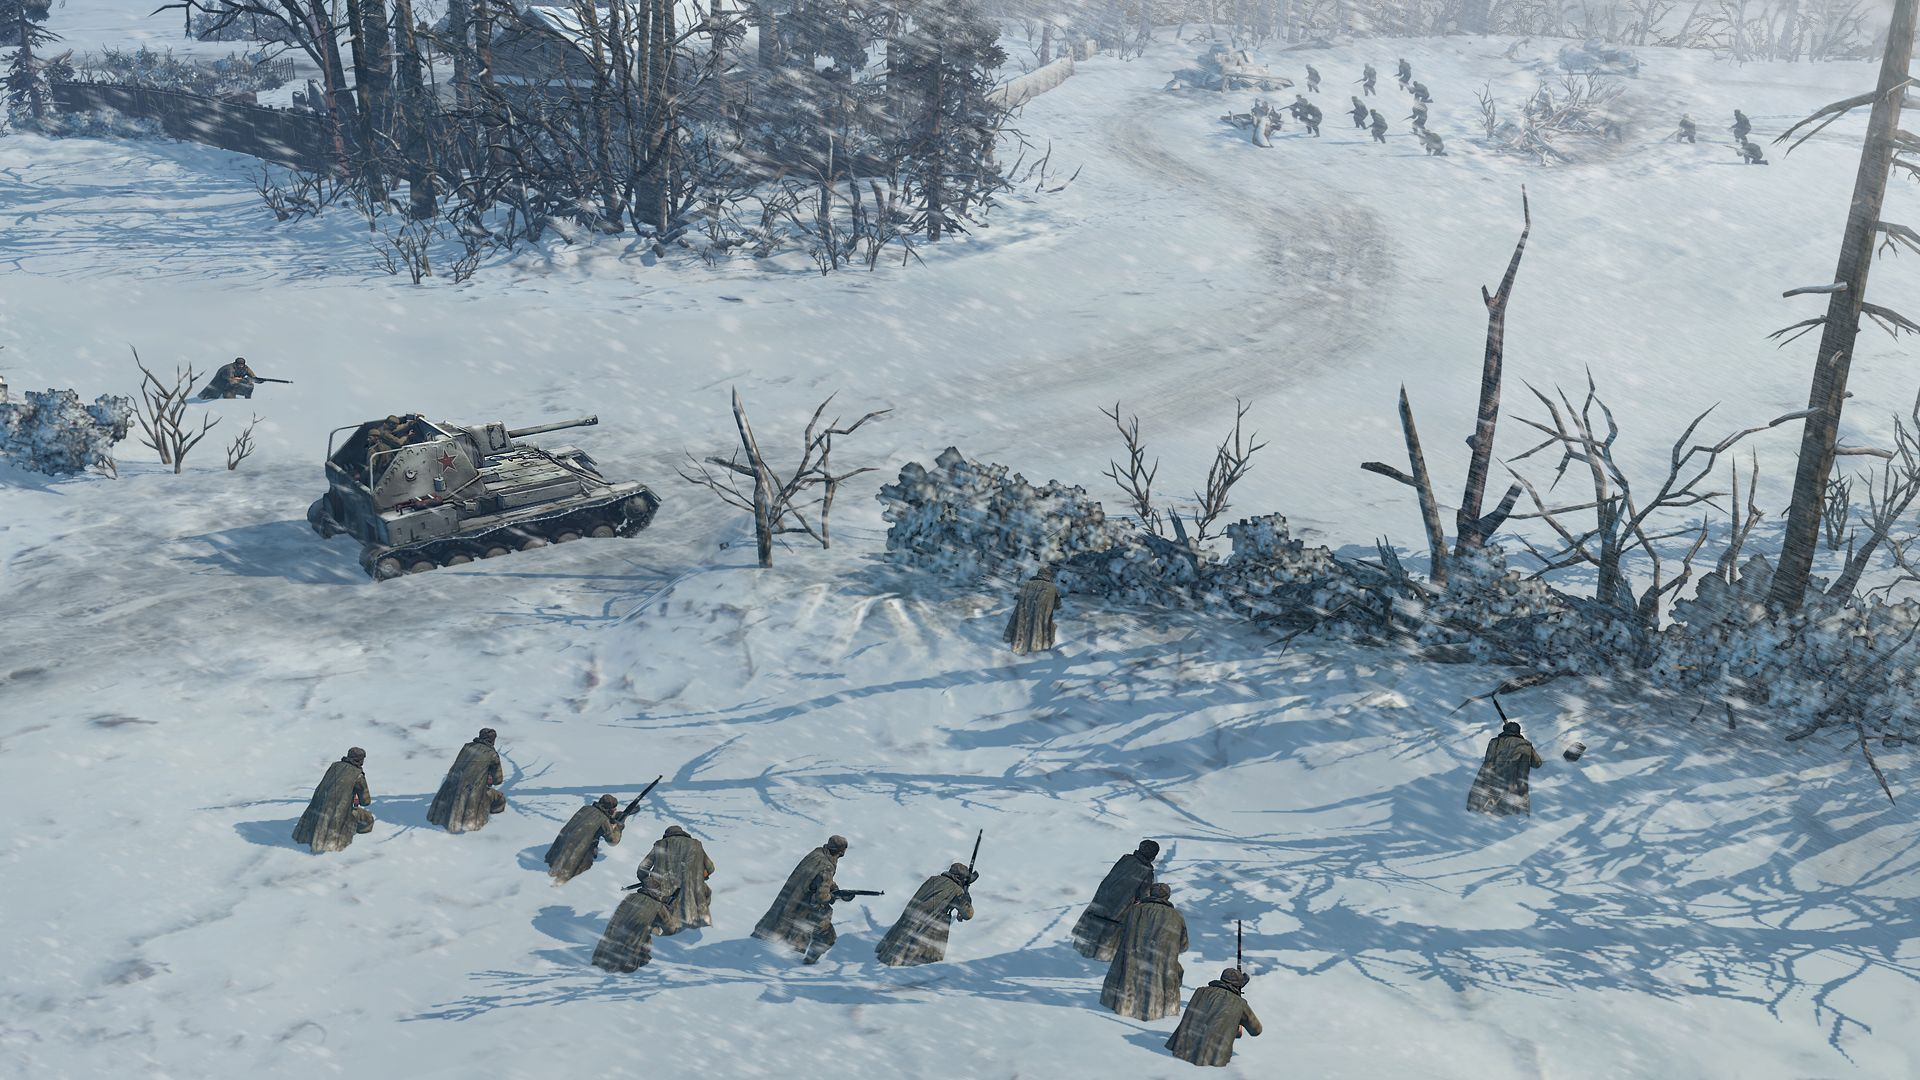 El trailer completo de Company of Heroes 2, muestra más explosiones, snipers y tanques on ice [Vídeo]